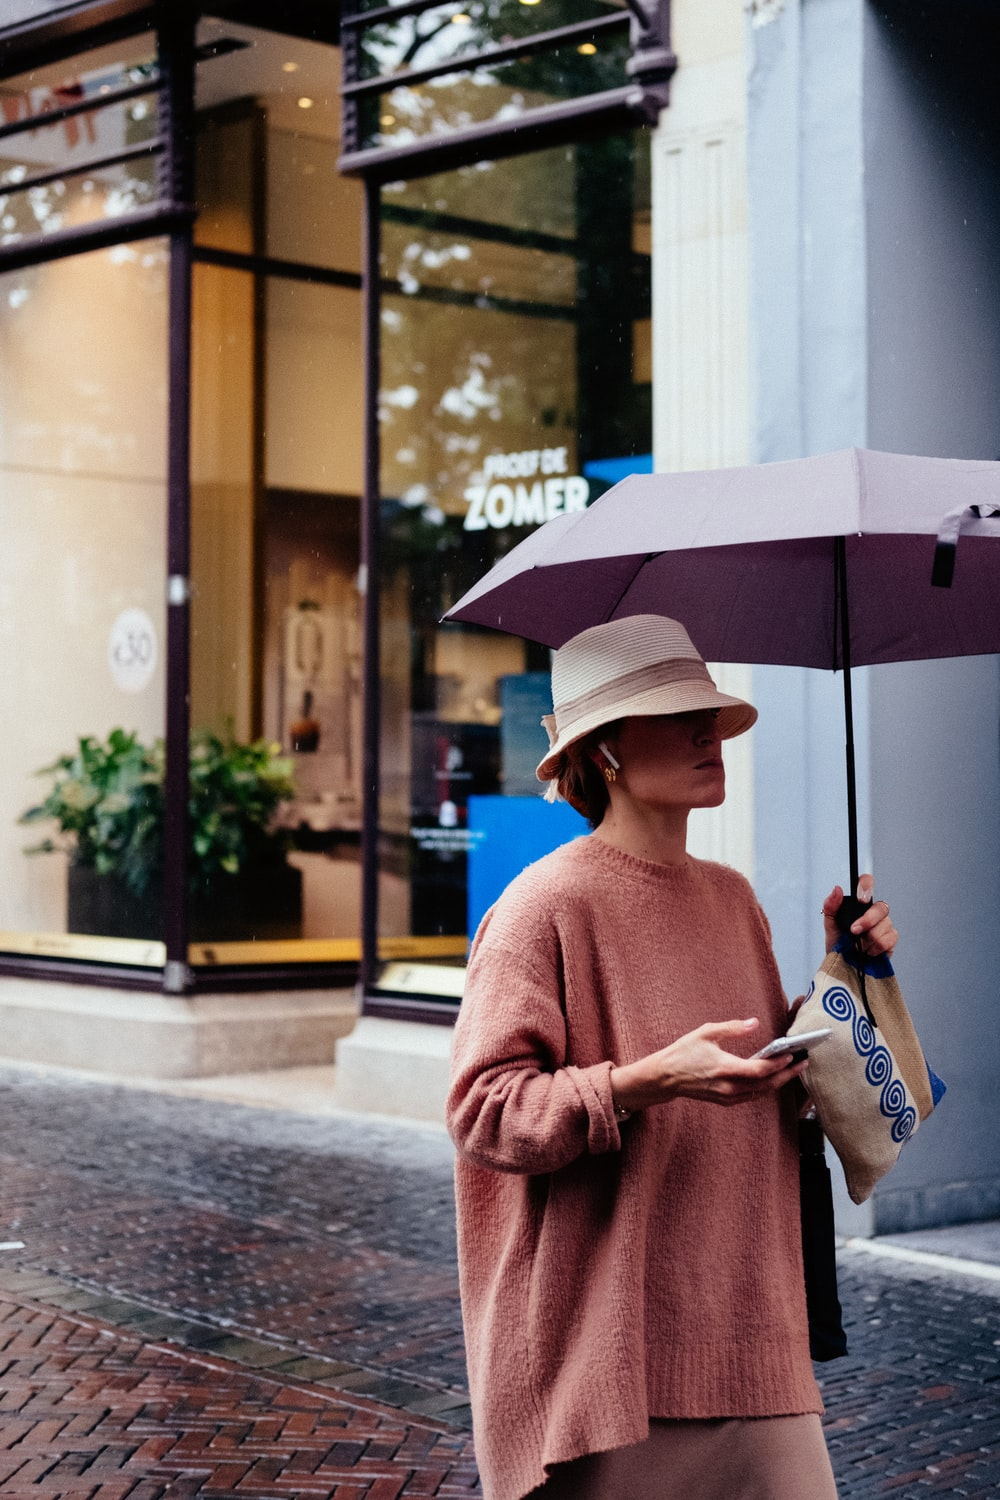 woman holding smartphone and umbrella while walking near building